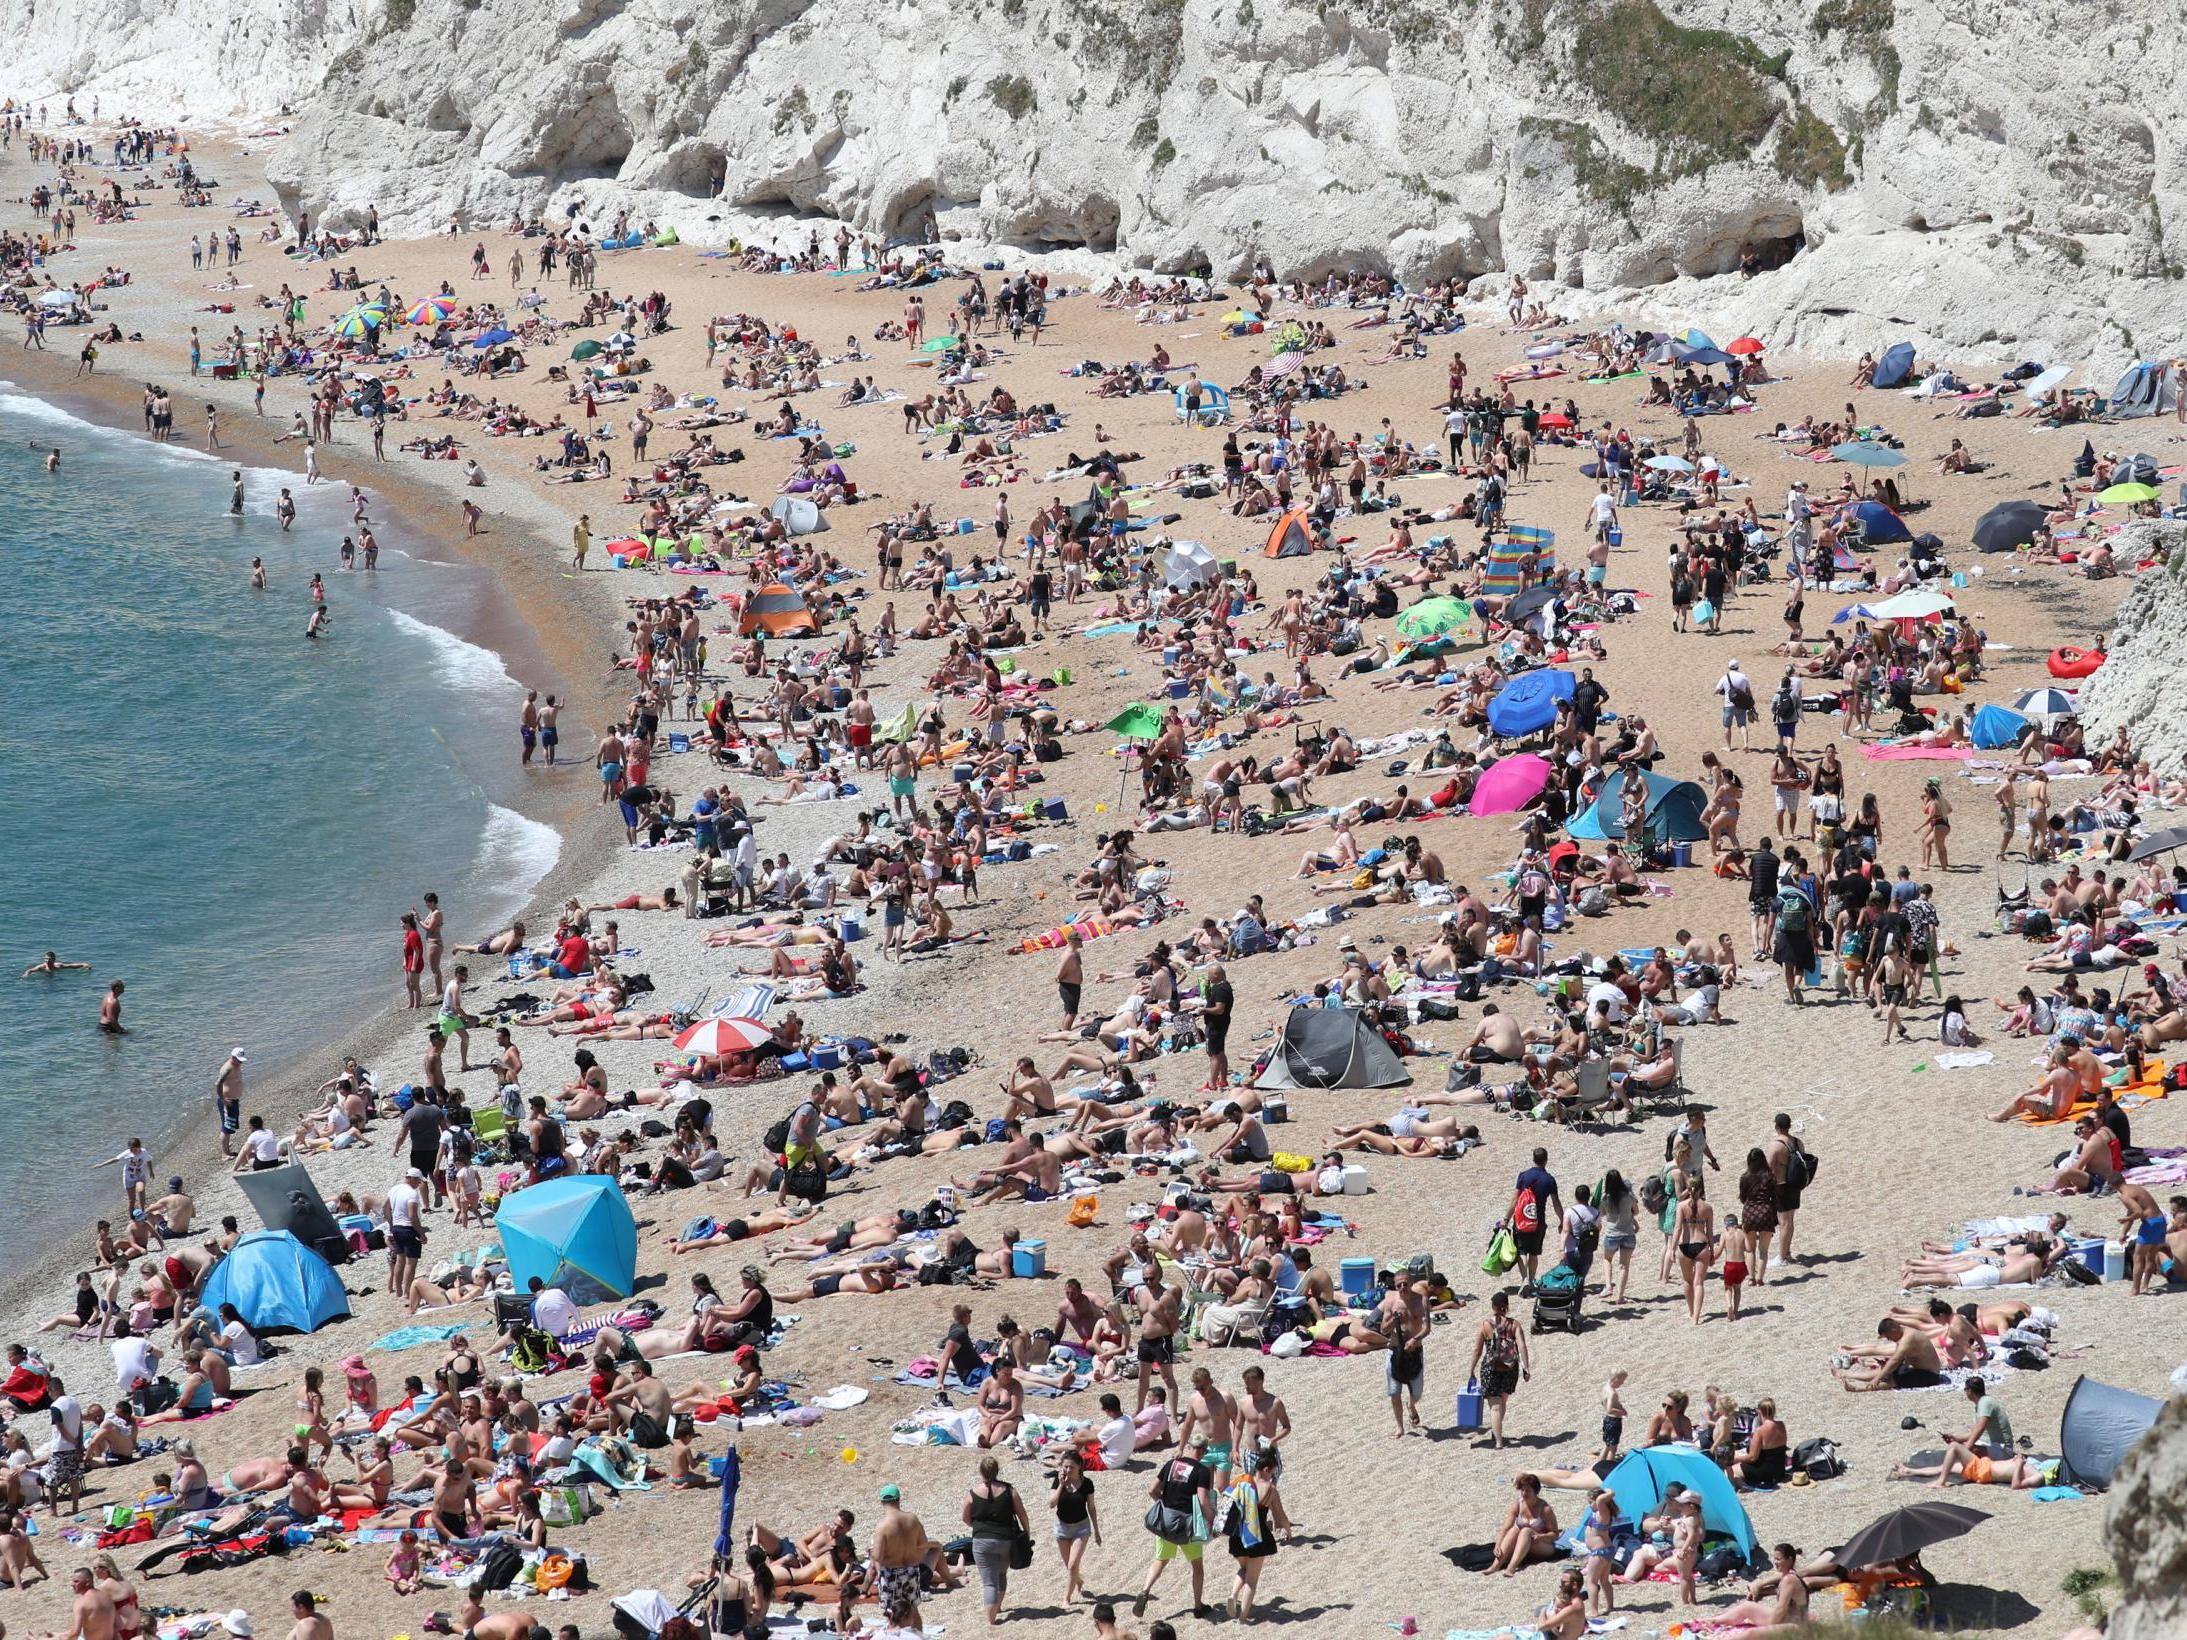 Hundreds ignore police warnings and flock to beach at Durdle Door after serious cliff injuries